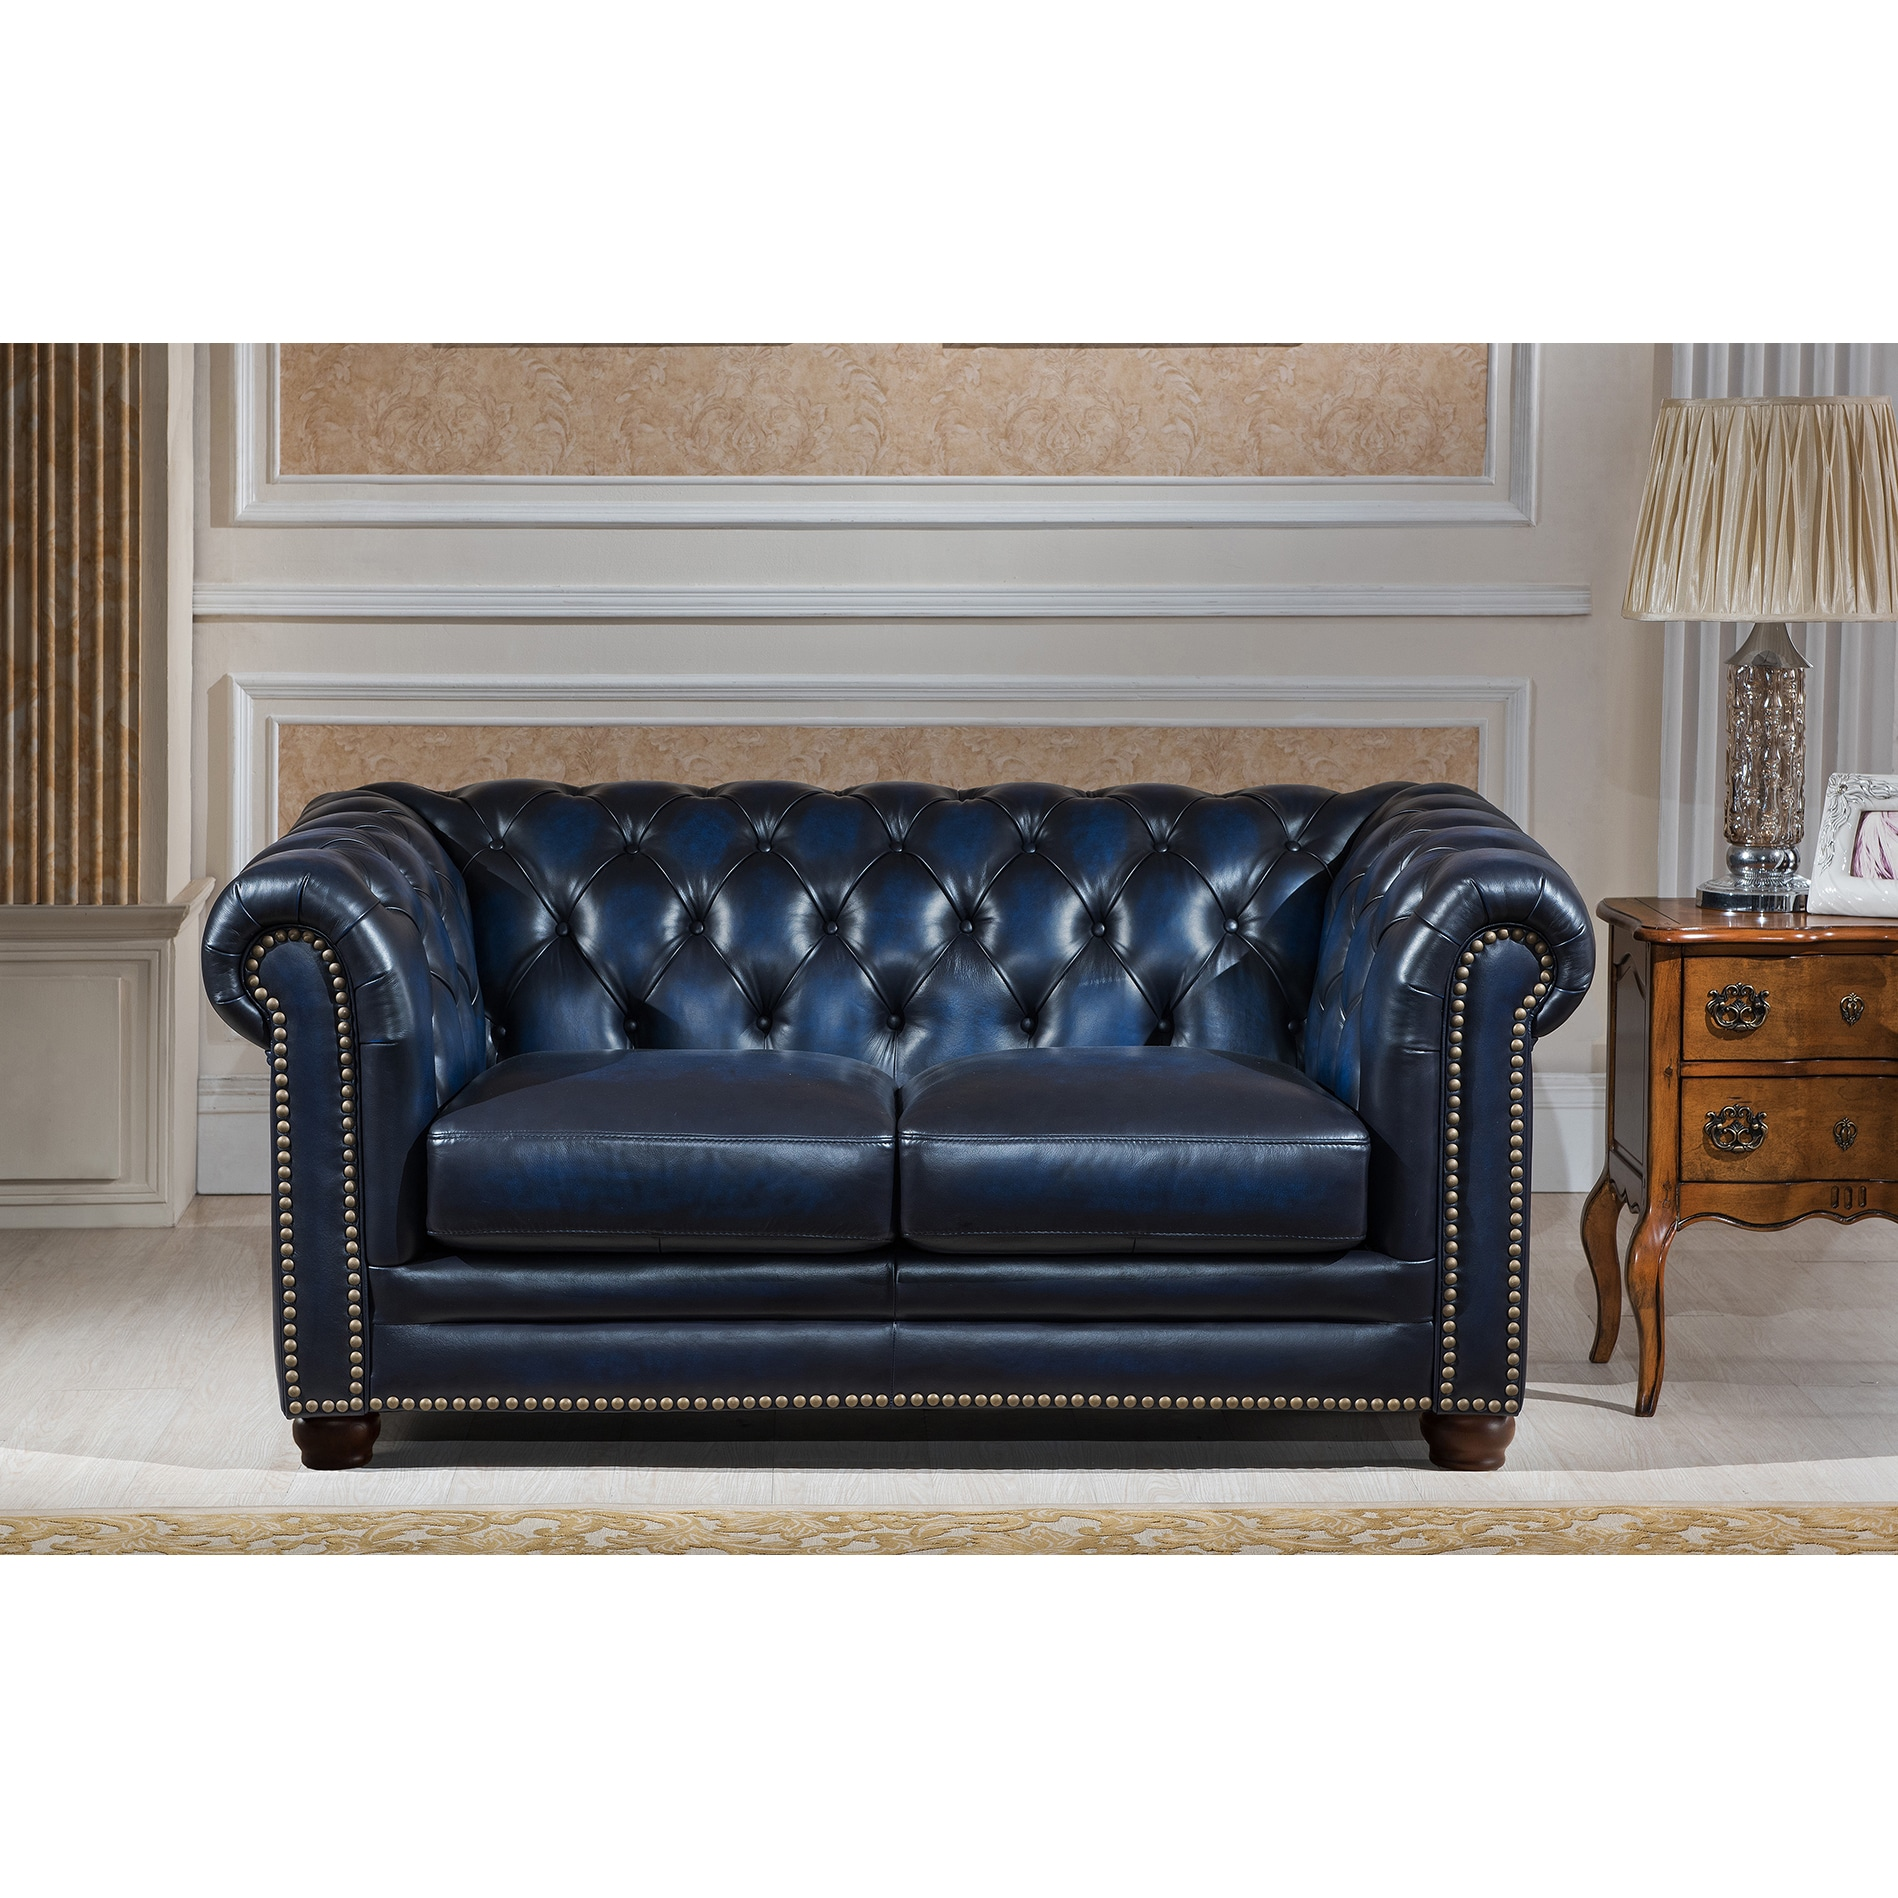 c8e15825d6f1 Nebraska Genuine Leather Chesterfield Loveseat With Feather